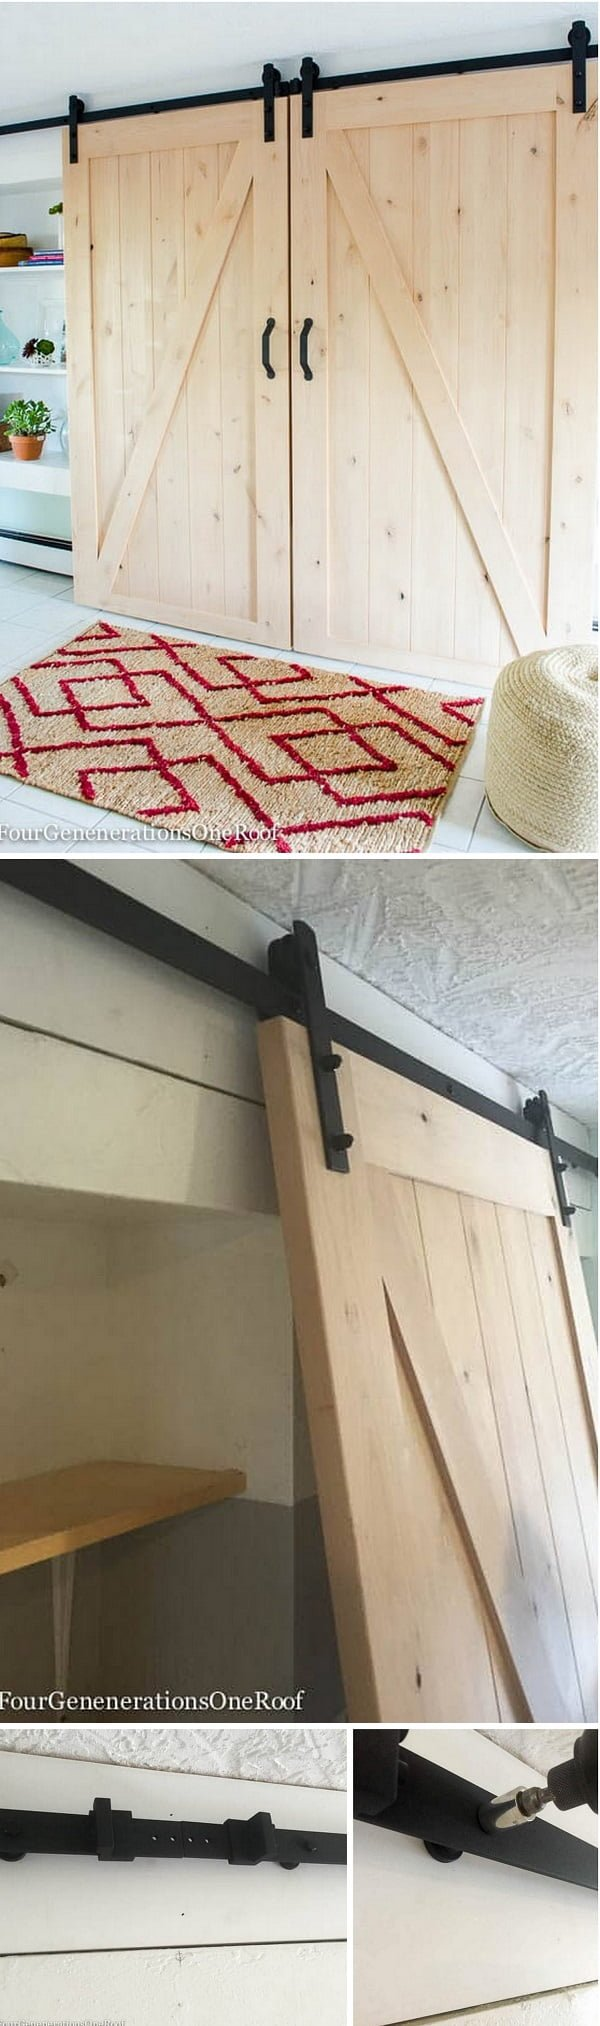 How to make DIY sliding double barn door